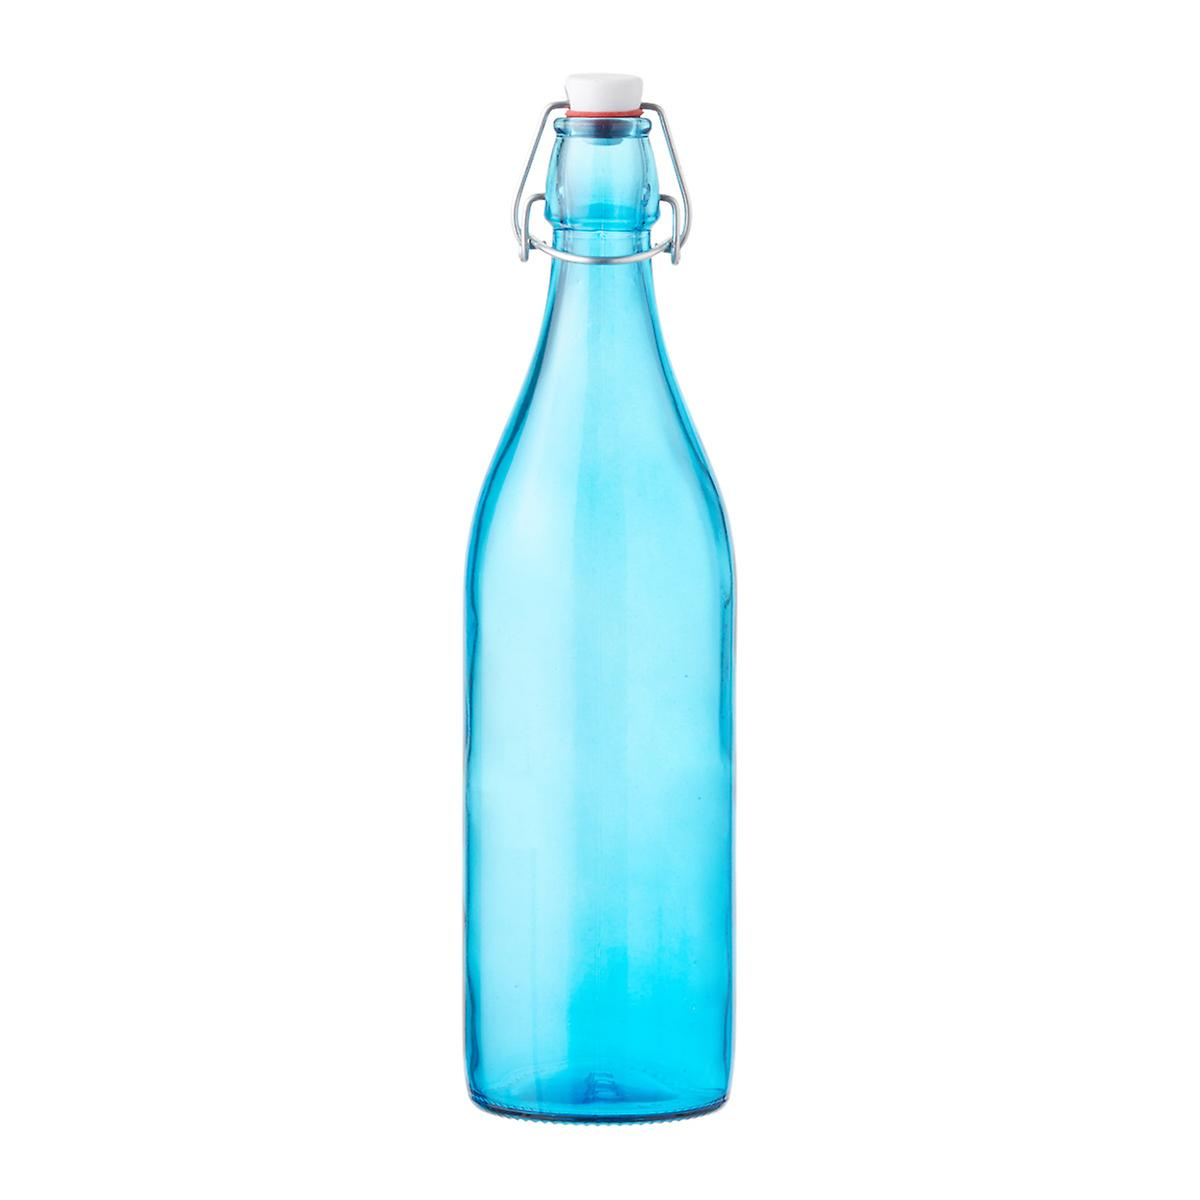 bottle water The world's leading brands of bottled water are contaminated with tiny plastic  particles that are likely seeping in during the packaging process,.